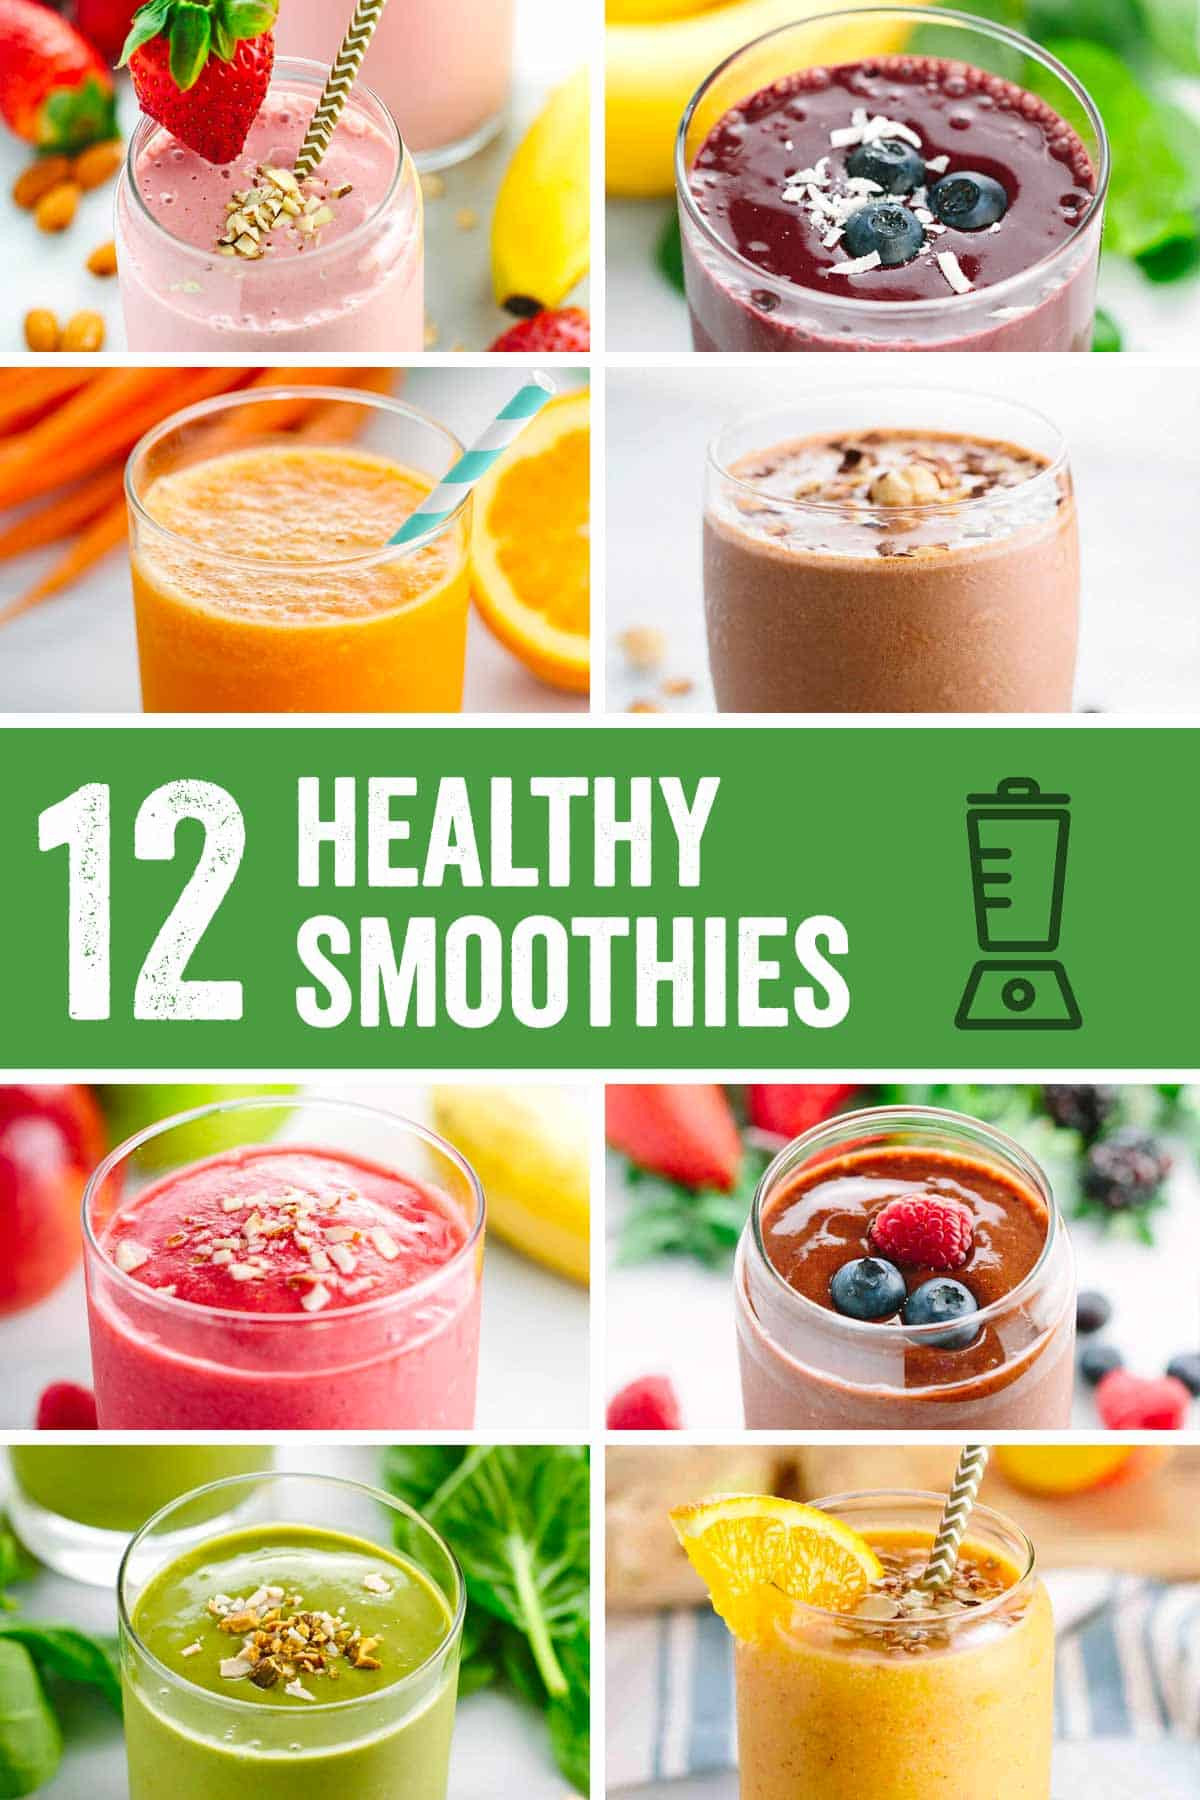 Smoothies Recipes Healthy  Roundup Easy Five Minute Healthy Smoothie Recipes